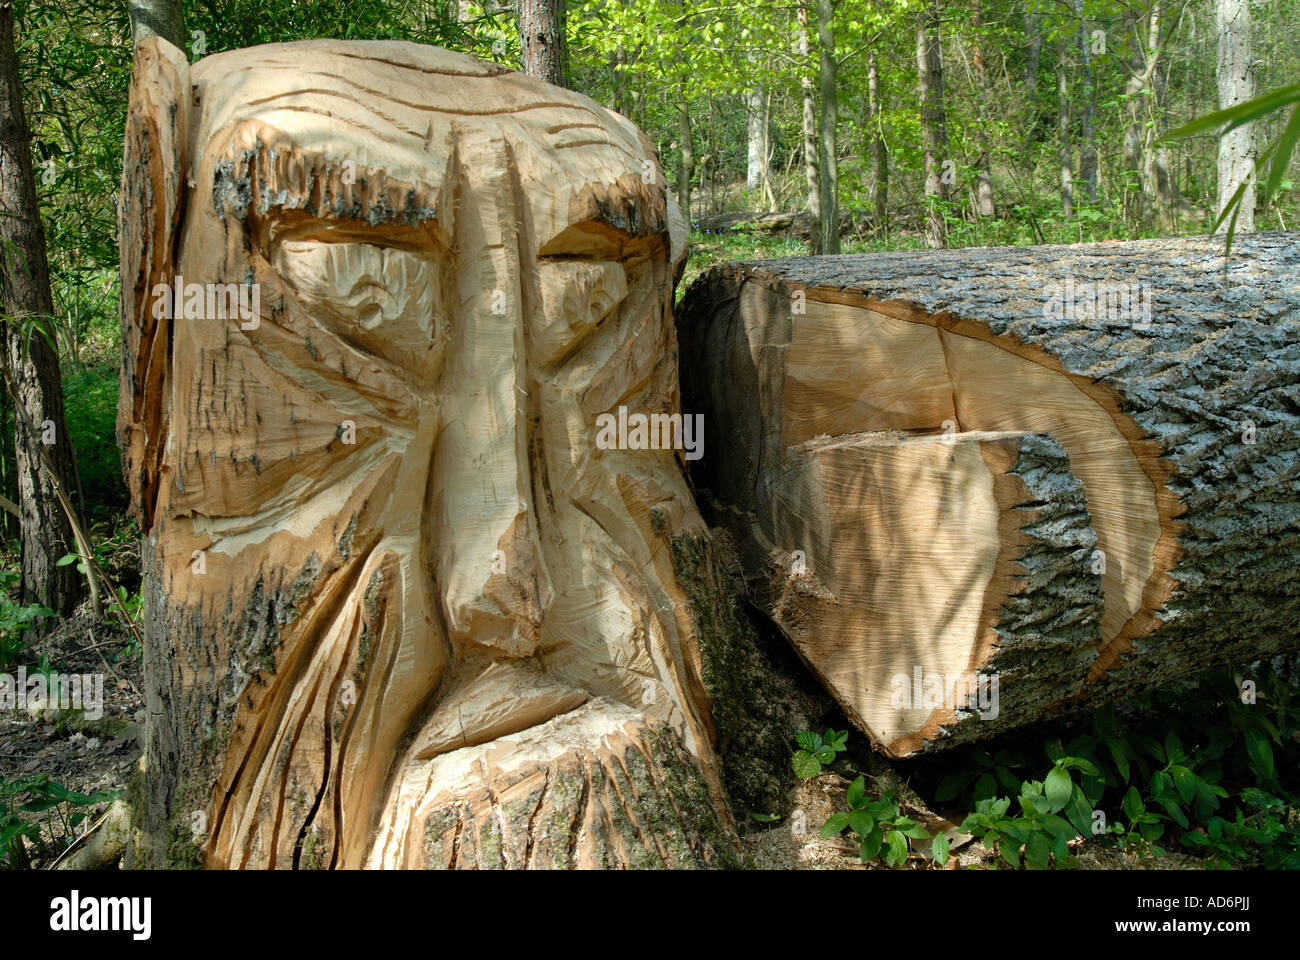 A carved tree trunk in the enchanted forest groombridge